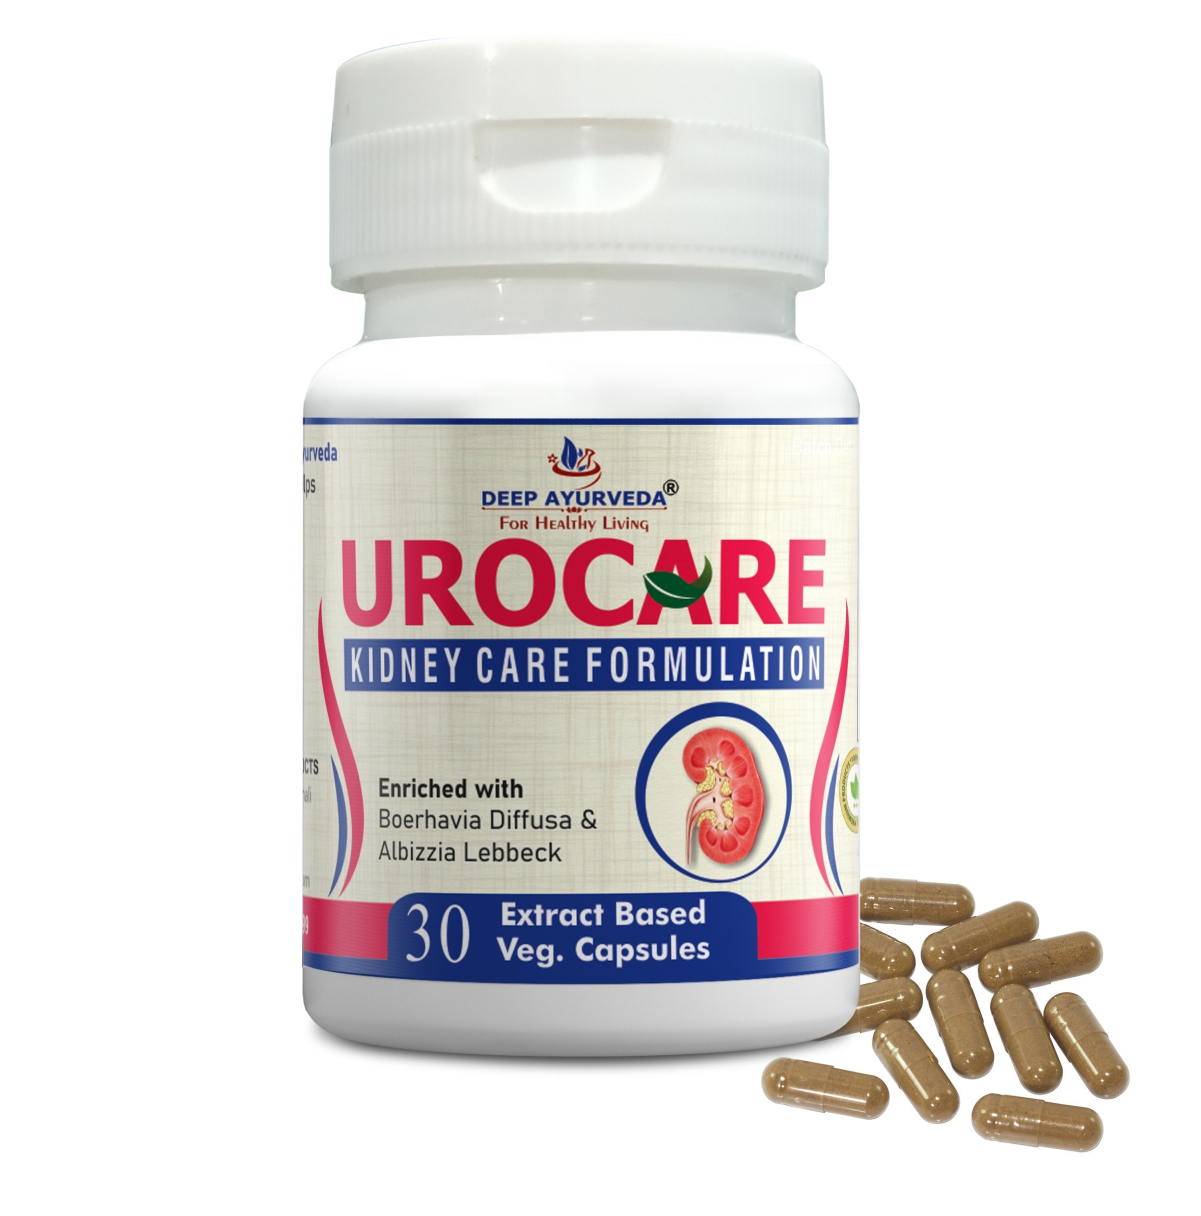 Urocare Herbal Capsule Complete Kidney Care Formula